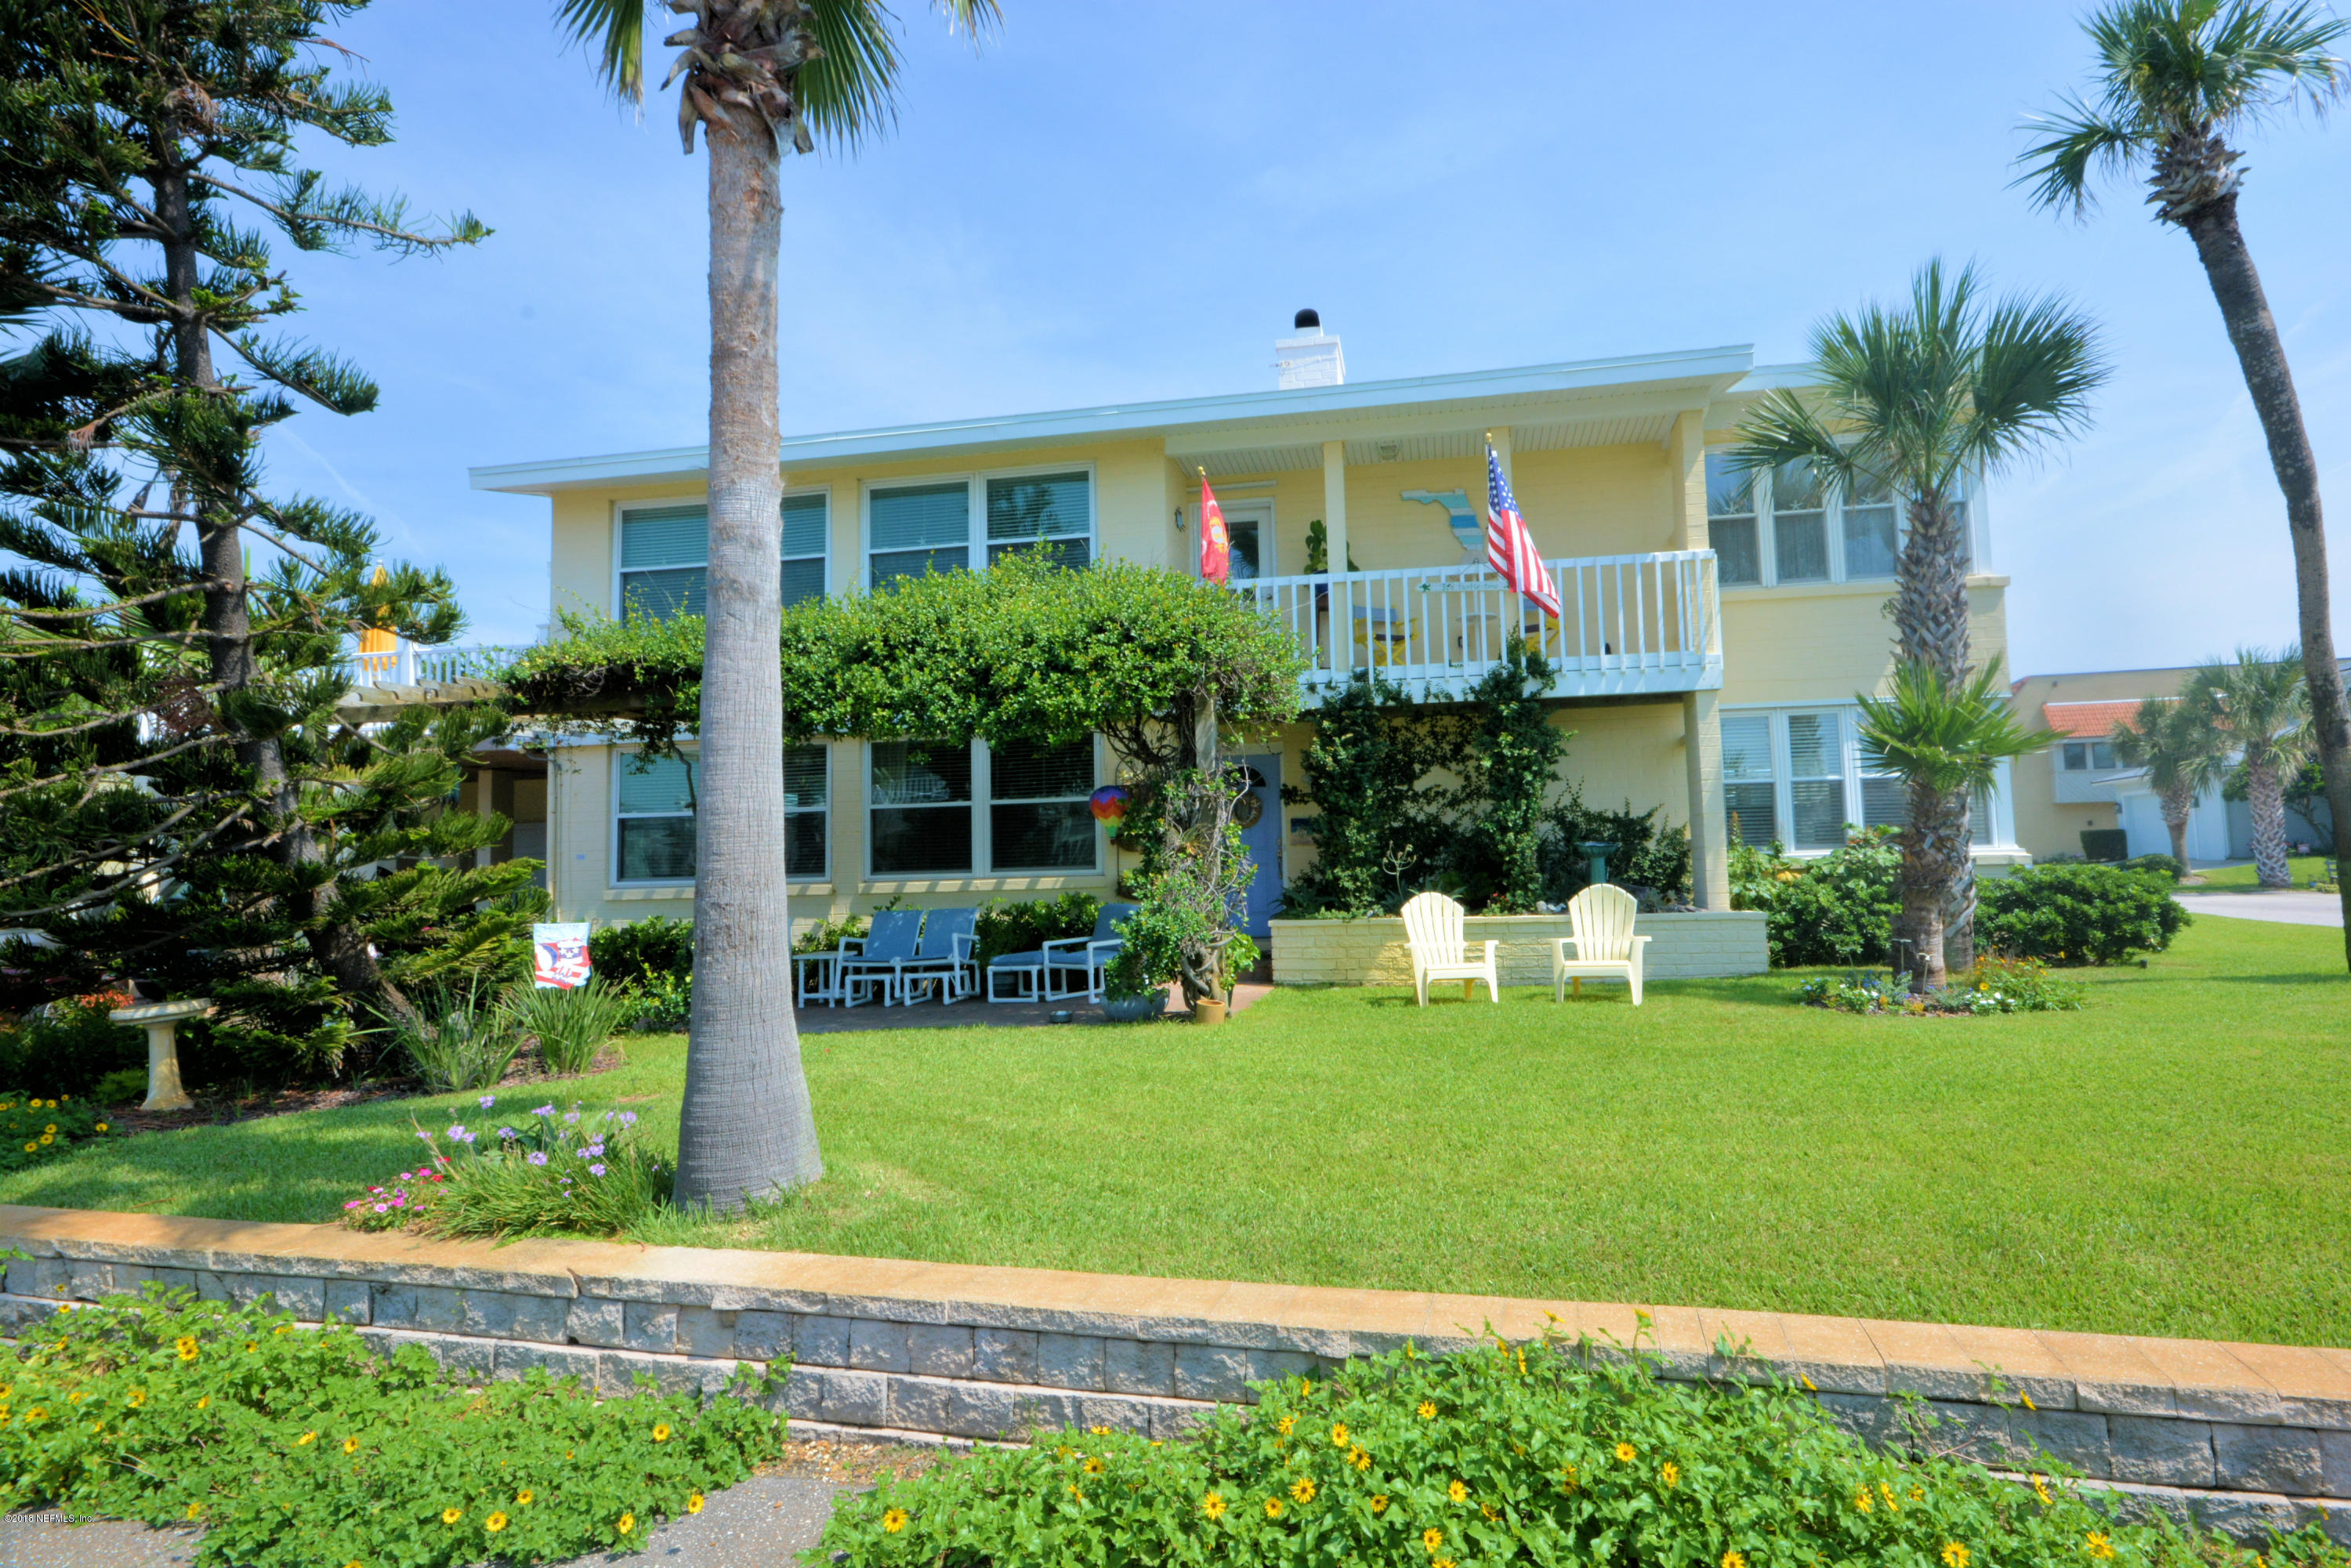 106 MYRA, NEPTUNE BEACH, FLORIDA 32266, 5 Bedrooms Bedrooms, ,3 BathroomsBathrooms,Commercial,For sale,MYRA,955626